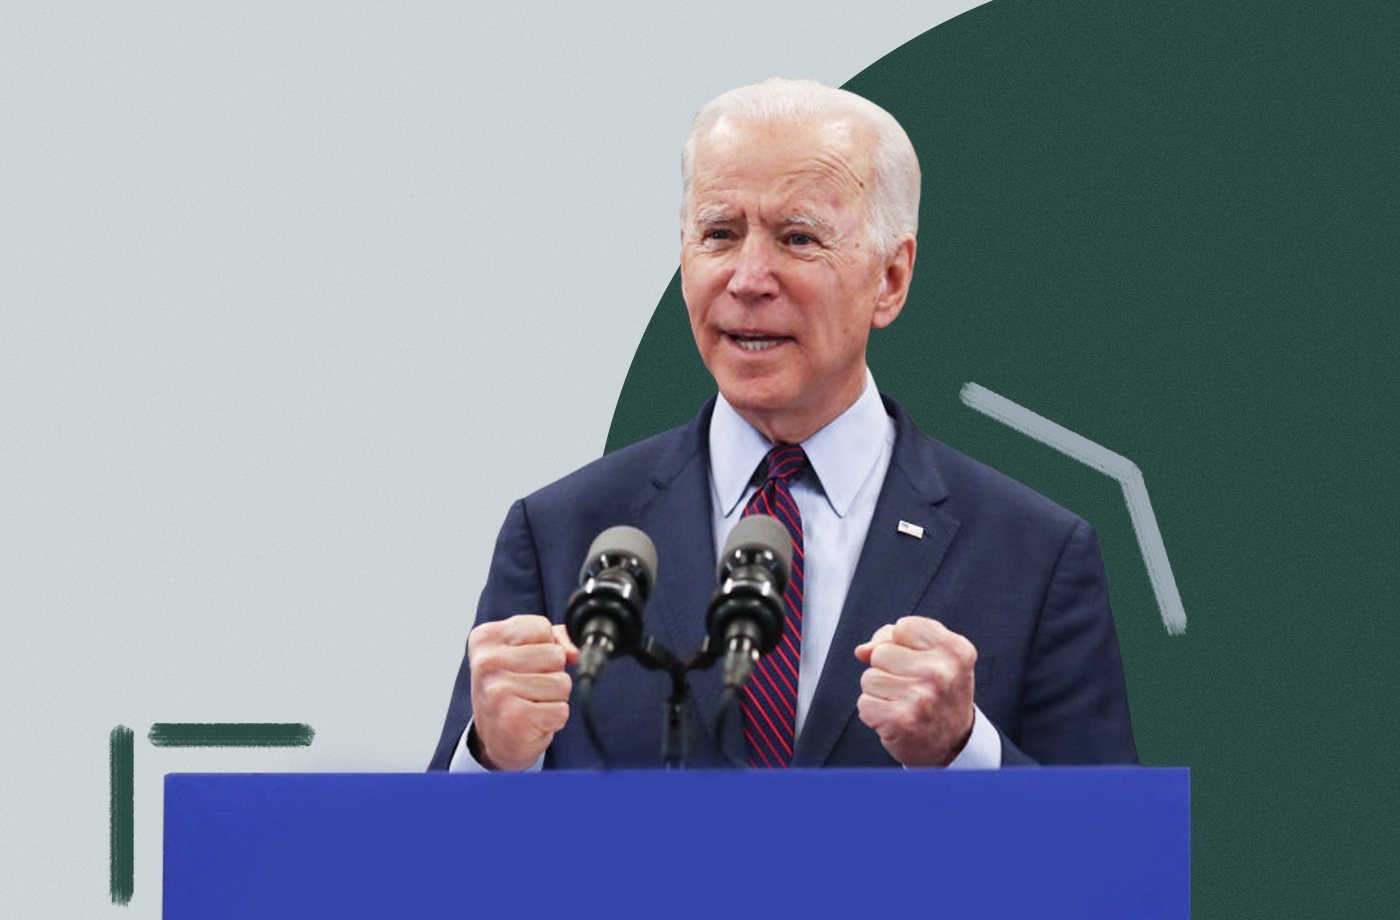 Here's How Joe Biden's Views and Policies Could Impact Your Well-Being